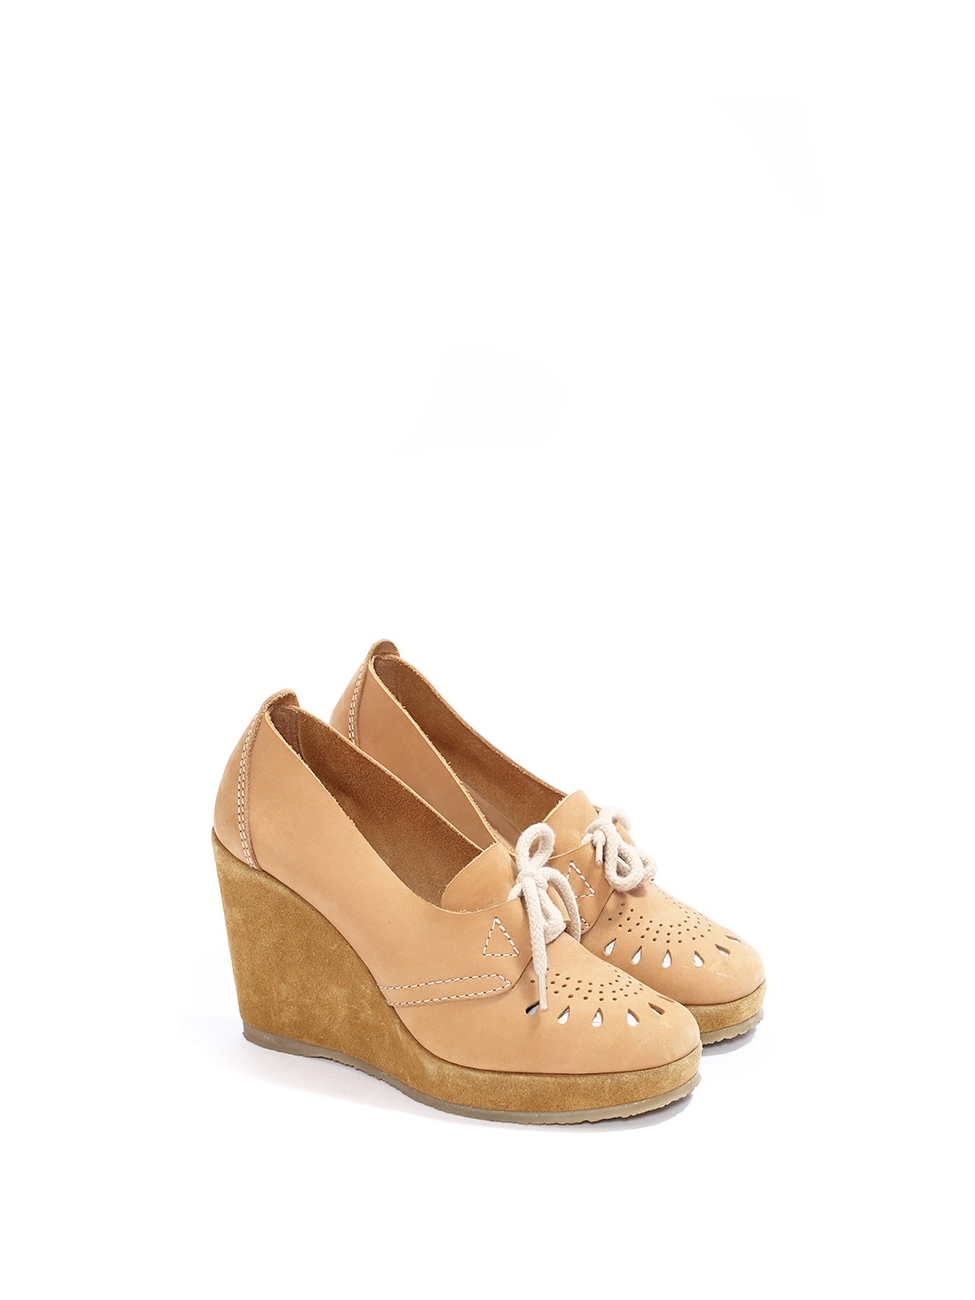 c6d93f5d3a37e4 Camel brown cutout leather and suede wedge loafers NEW Retail price €330  Size 39